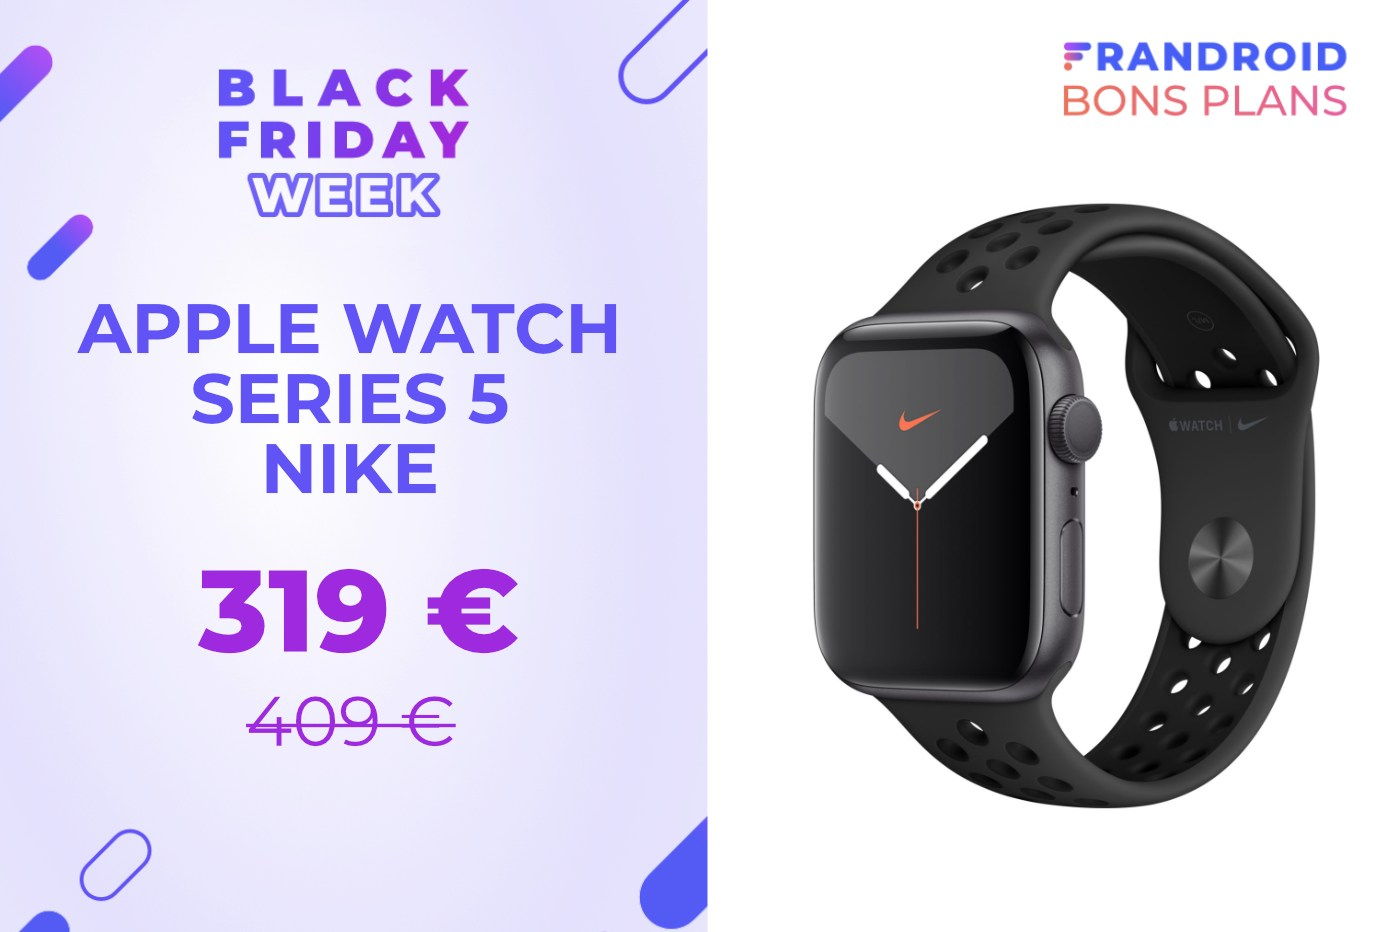 L'édition Nike de l'Apple Watch Series 5 est bradée pour le Black Friday